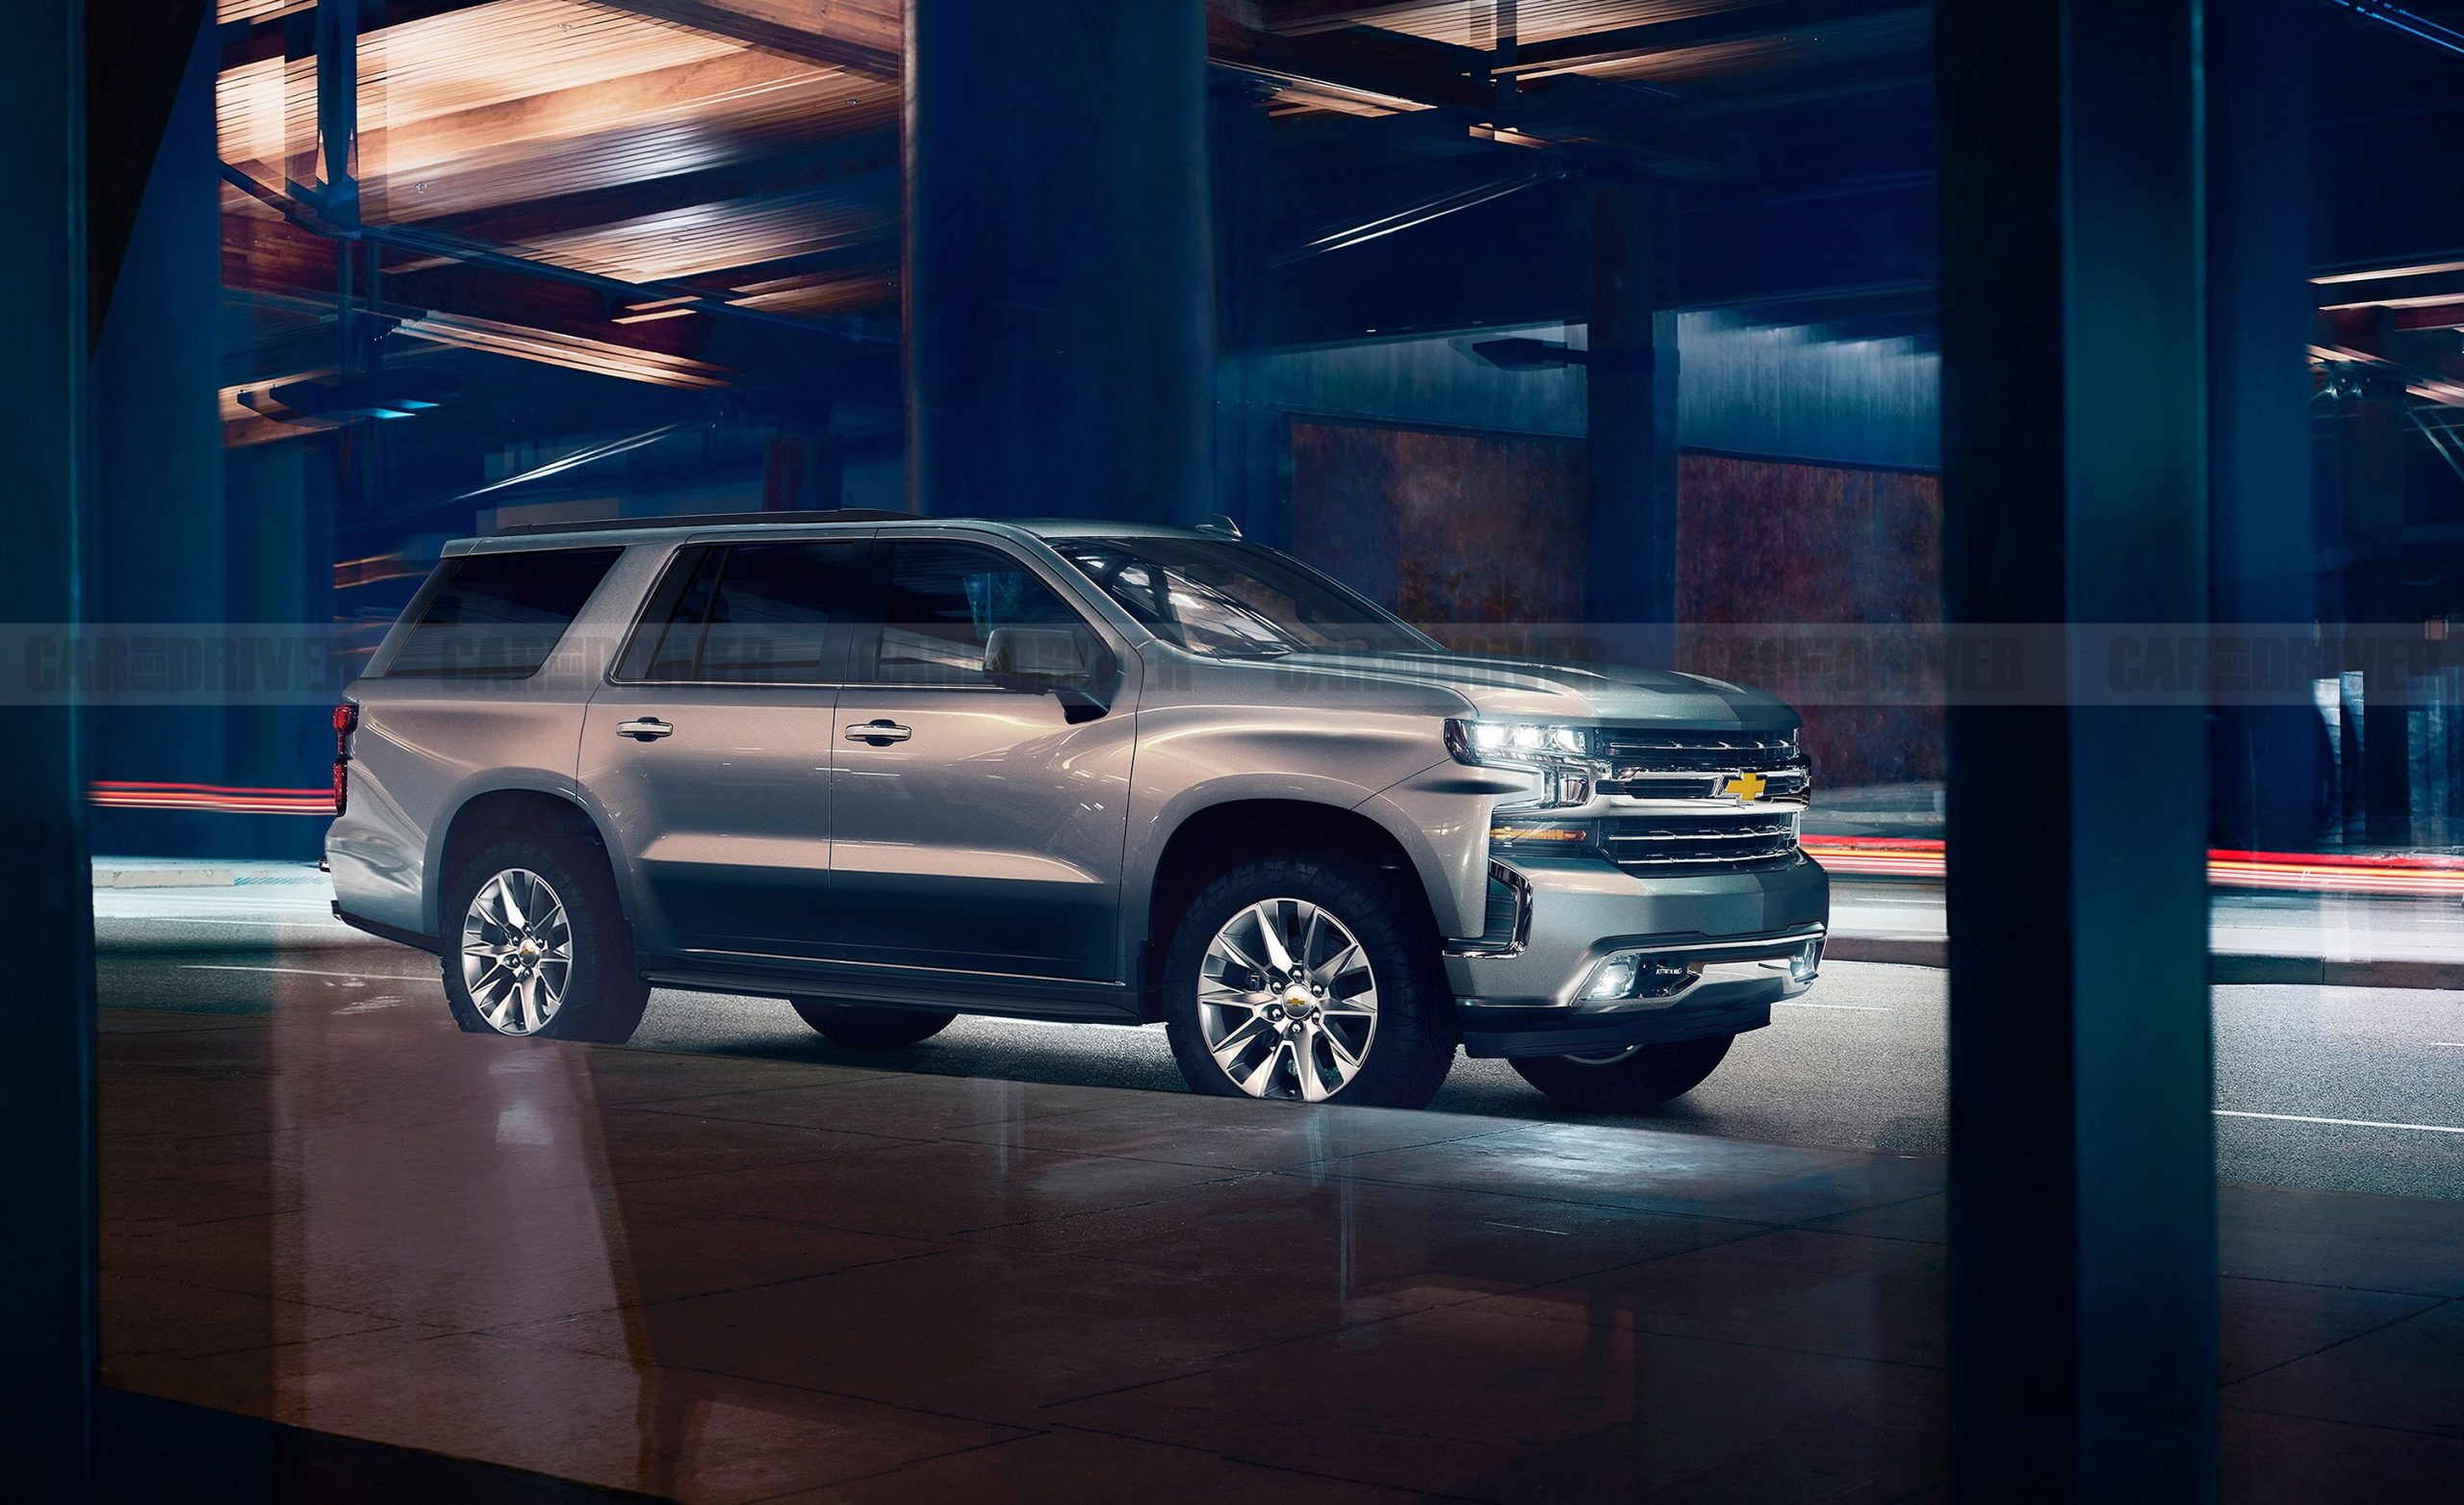 2021 Chevrolet Tahoe – Future Full-Size Suv 2022 Chevy Tahoe Deals, Dashboard, Dealership